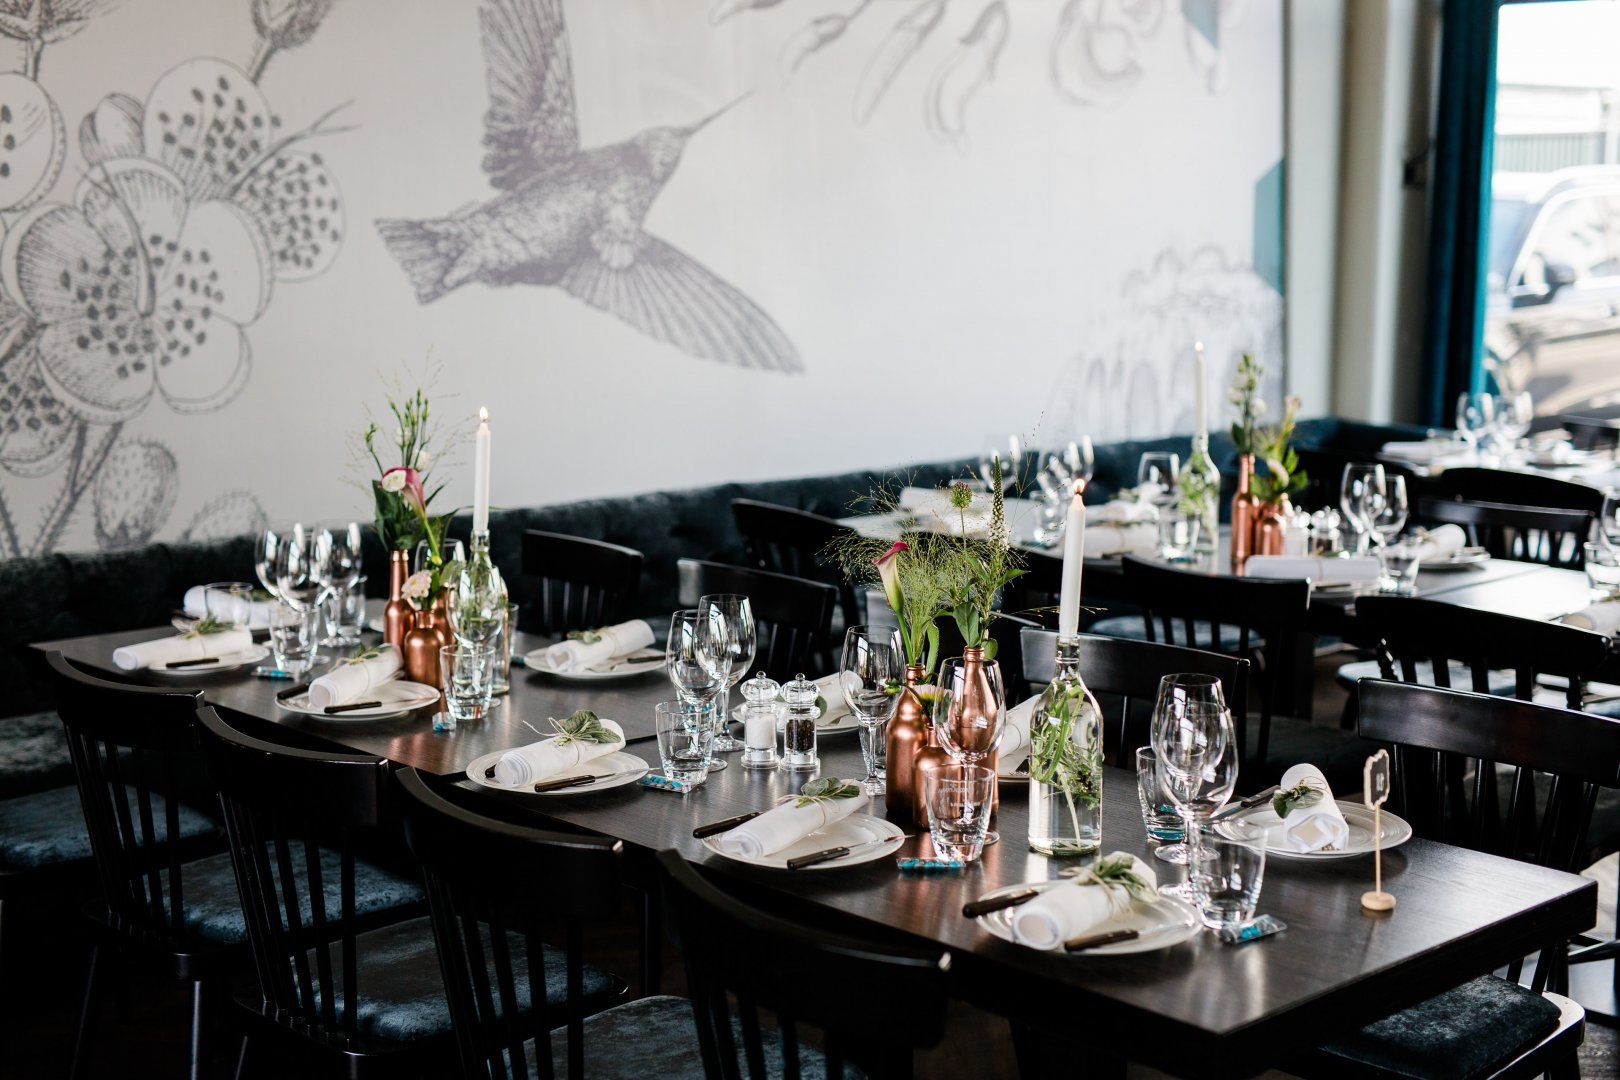 Rehearsal dinner Restaurant Table Room Meal Design Furniture Interior design Black-and-white Brunch Textile Lunch Event Photography Dining room Chair Centrepiece Tablecloth Flower Linens Function hall Tableware Party